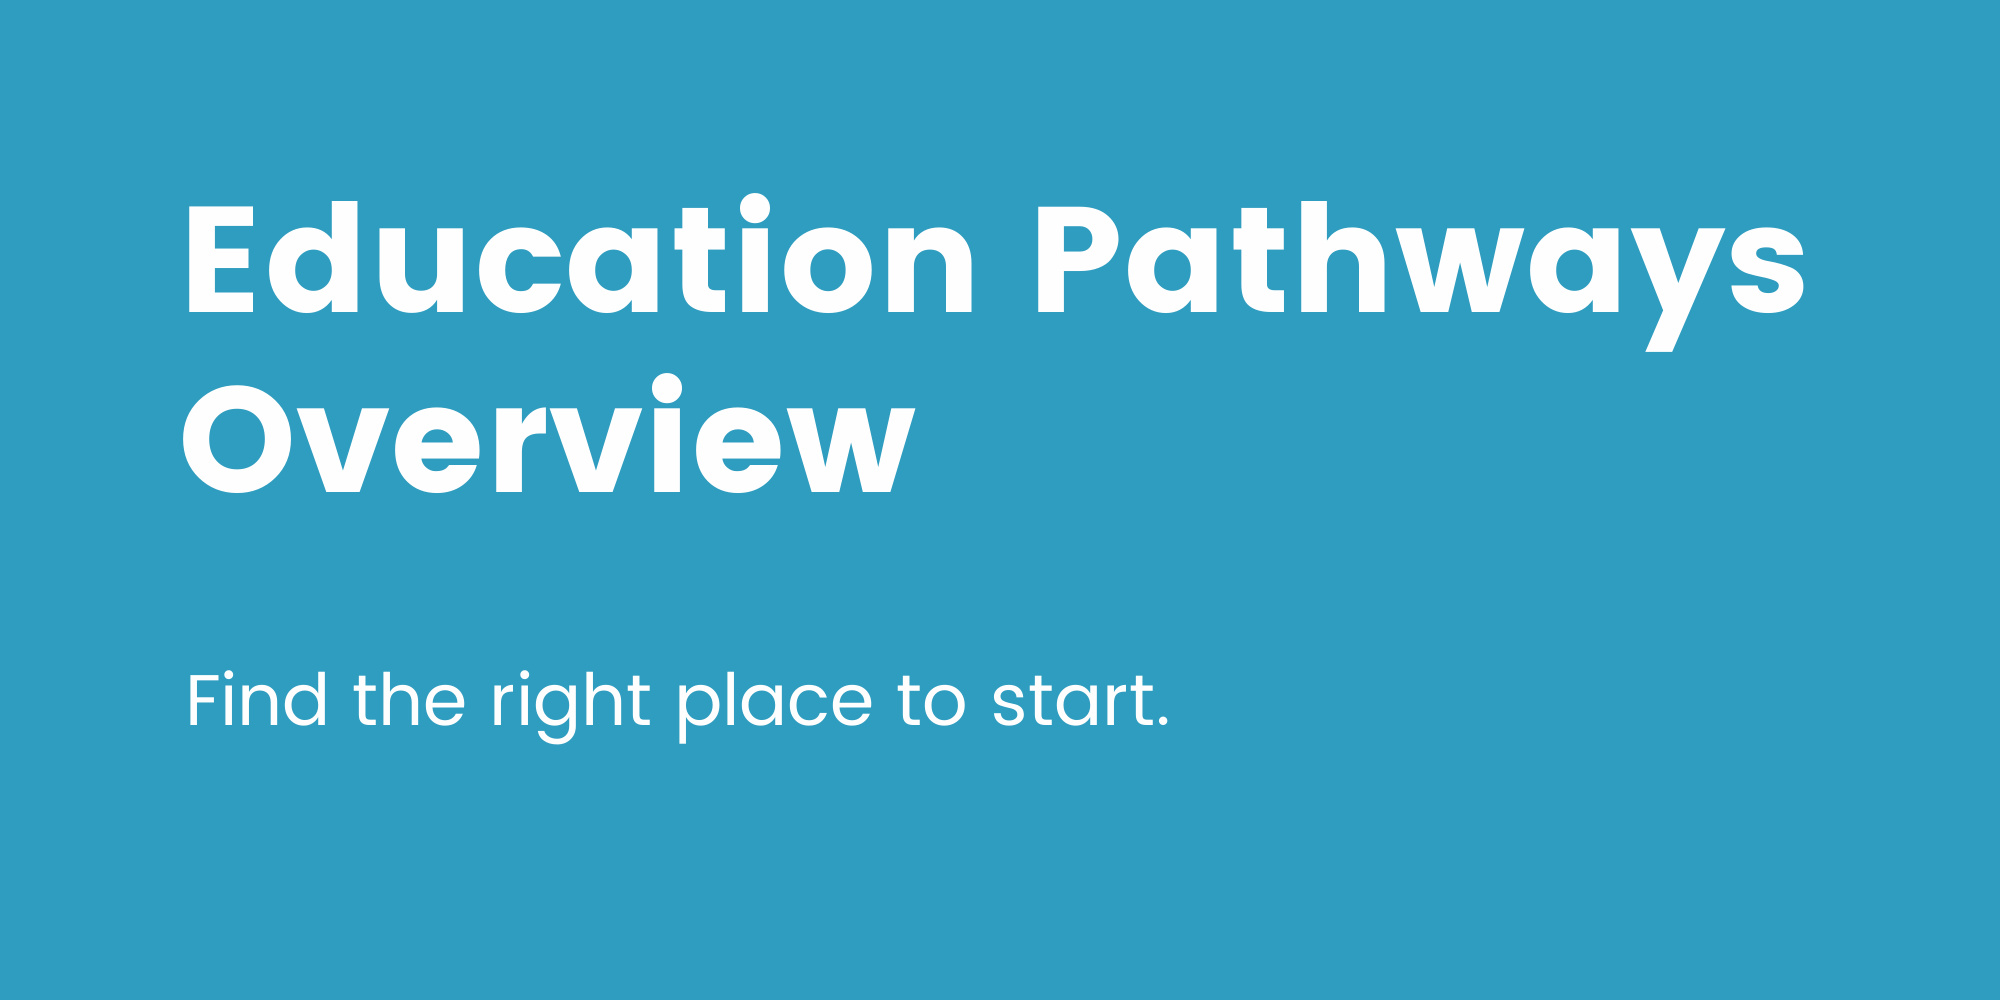 Education Pathways Overview